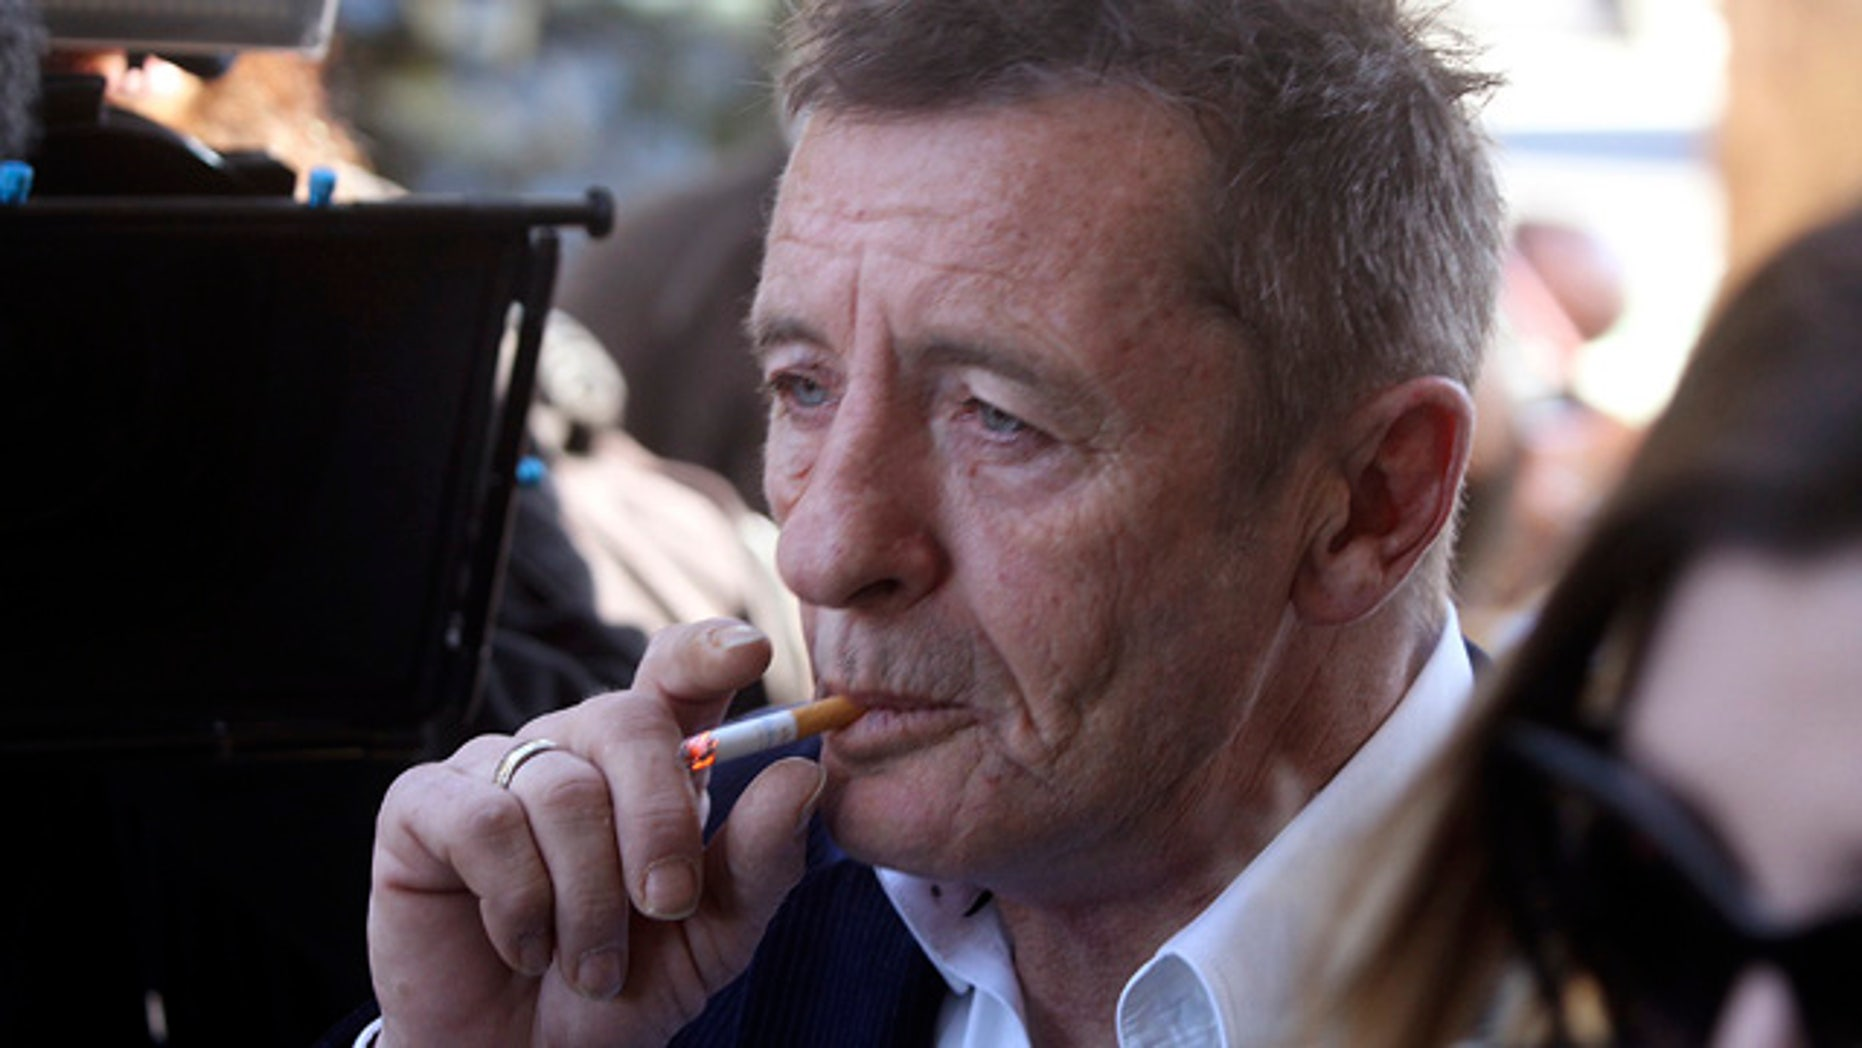 FILE - In this Thursday, July 9, 2015 file photo, former AC/DC drummer Phil Rudd arrives for sentencing at the Tauranga District Court in Tauranga, New Zealand. Rudd has been arrested in New Zealand, just 10 days after he was sentenced to home detention for threatening to kill a man who used to work for him. (Alan Gibson/New Zealand Herald via AP, File) NEW ZEALAND OUT, AUSTRALIA OUT